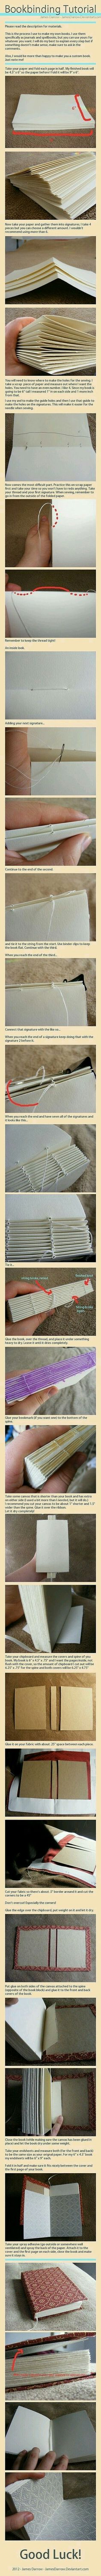 7 Best Bindings Images On Pinterest Book Binding Bookbinding And Origami Dog Diagram Group Picture Image By Tag Keywordpictures For A Spellbook Maybe